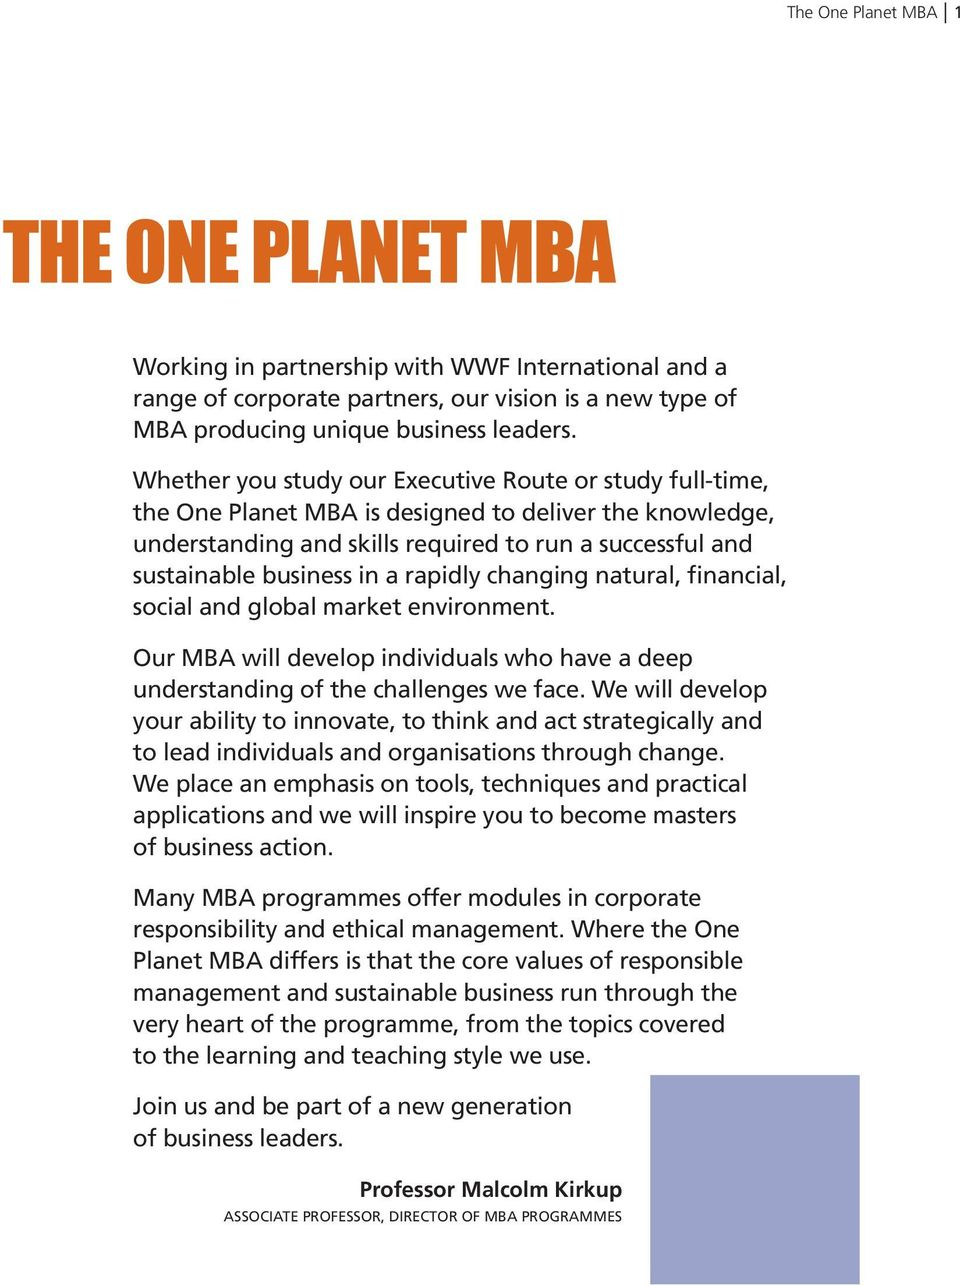 rapidly changing natural, financial, social and global market environment. Our MBA will develop individuals who have a deep understanding of the challenges we face.